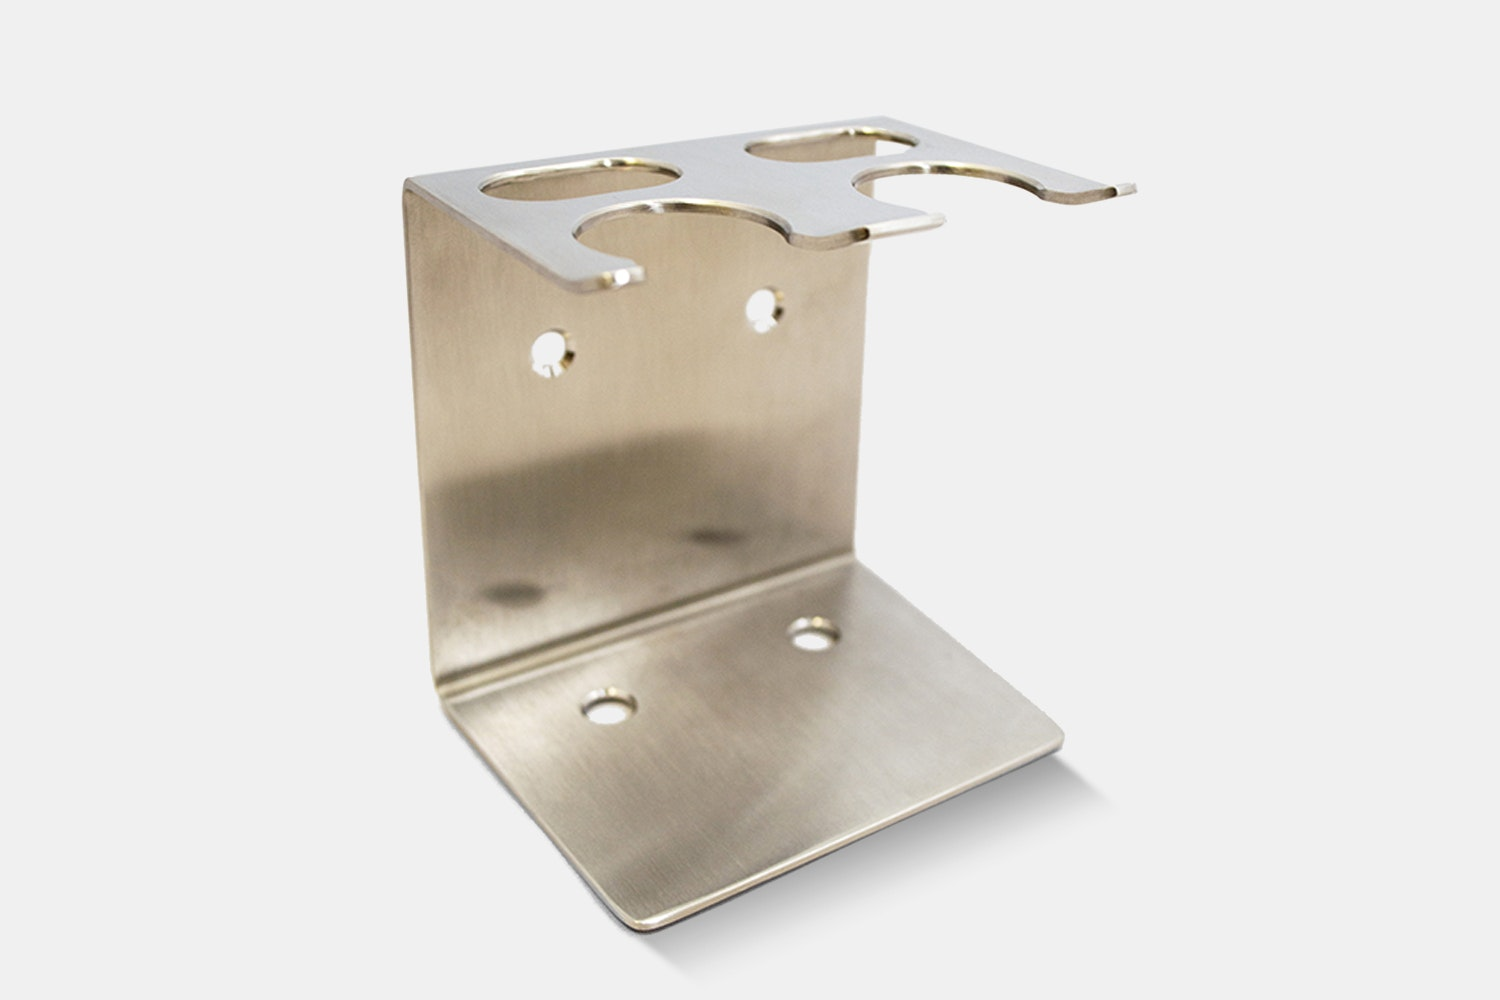 Dual Brush and Razor Stand – Stainless Steel (+ $28)